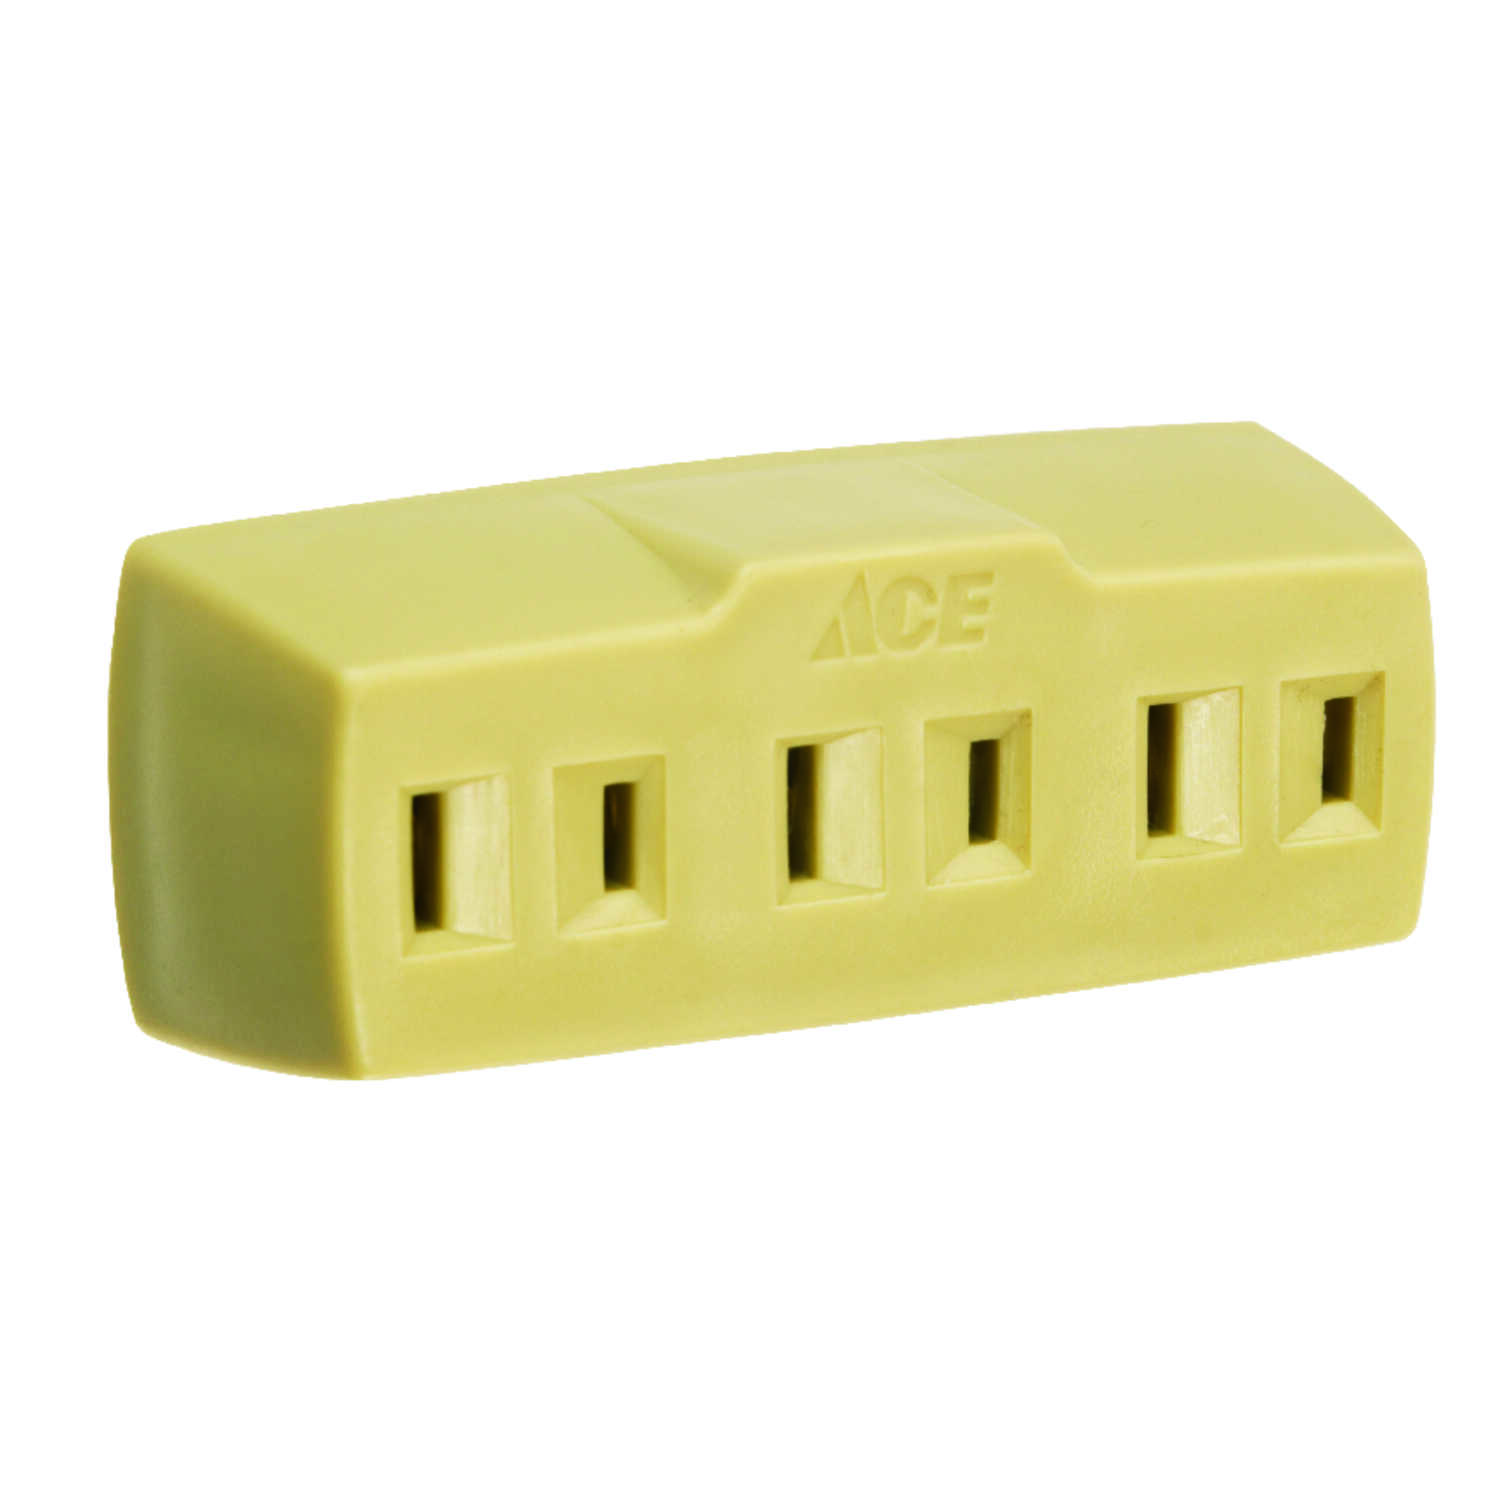 Ace  Polarized  3  1 pk Triple Outlet Adapter  Surge Protection